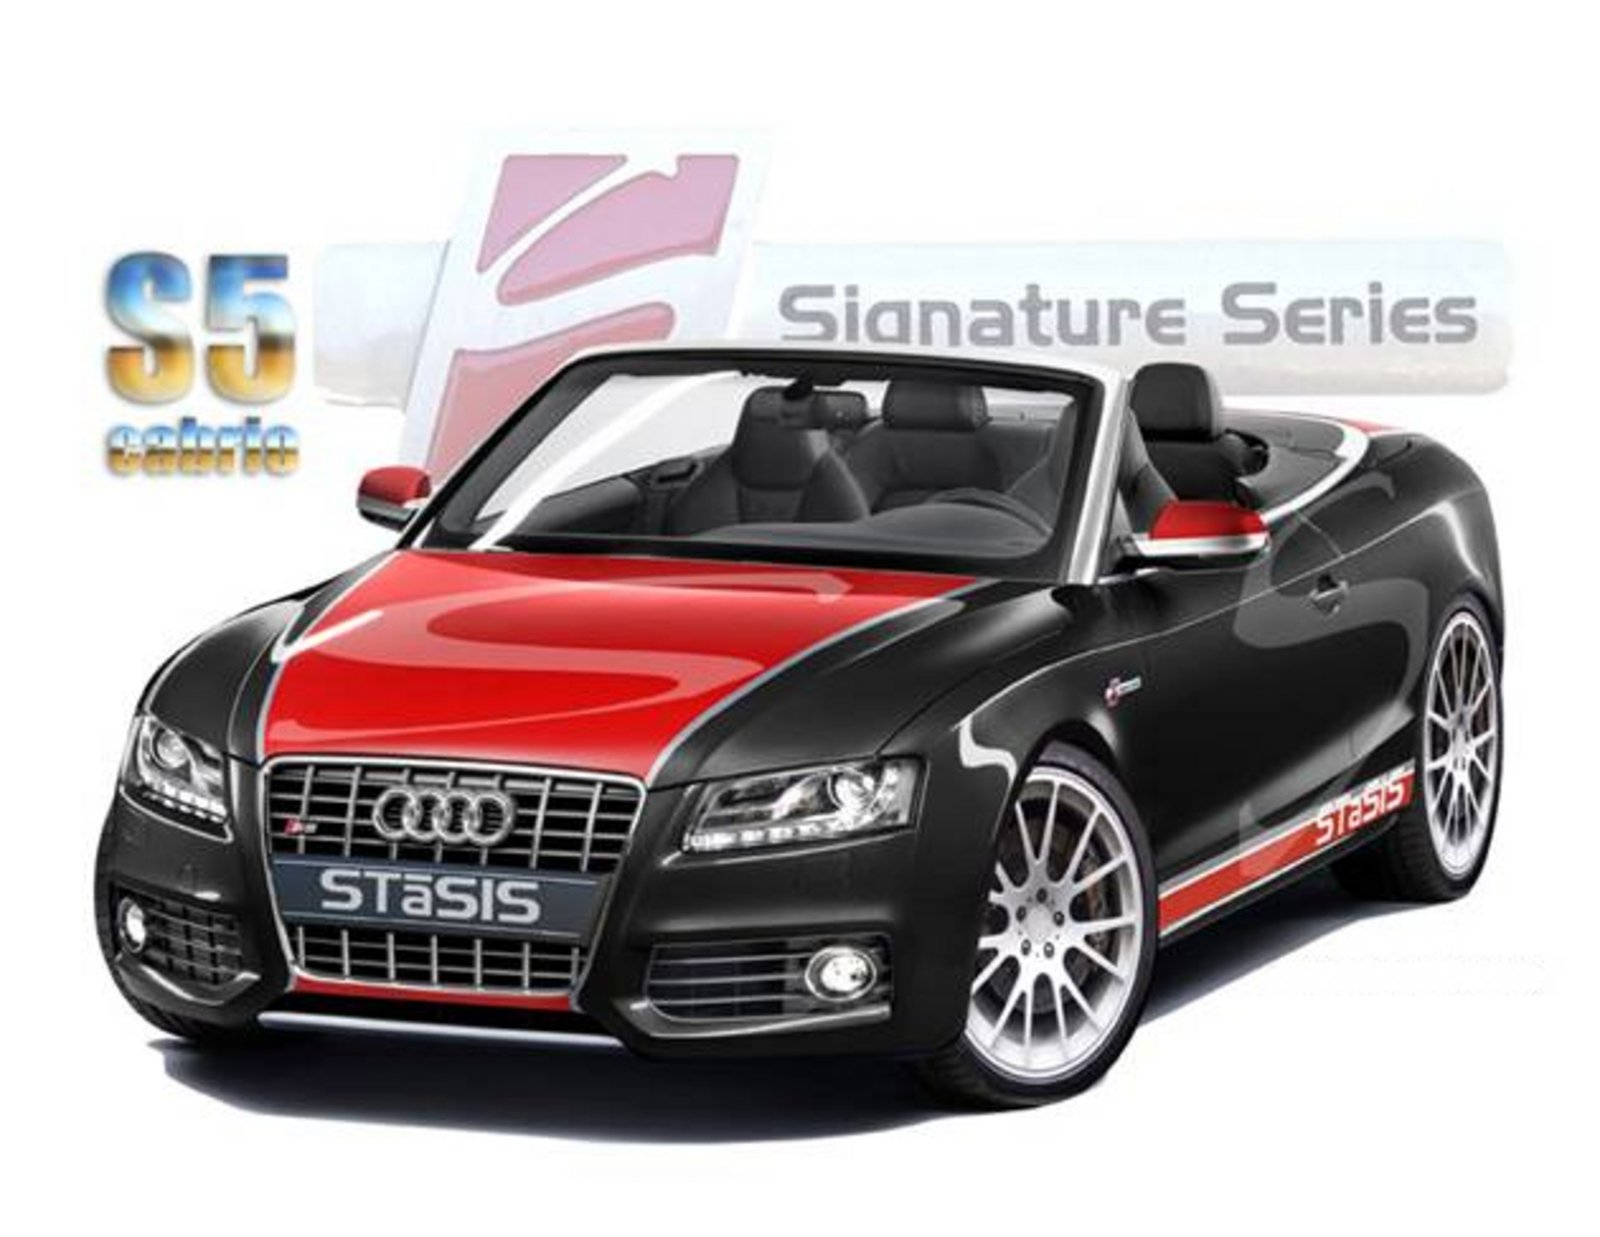 2010 audi s5 cabriolet by stasis engineering review top. Black Bedroom Furniture Sets. Home Design Ideas